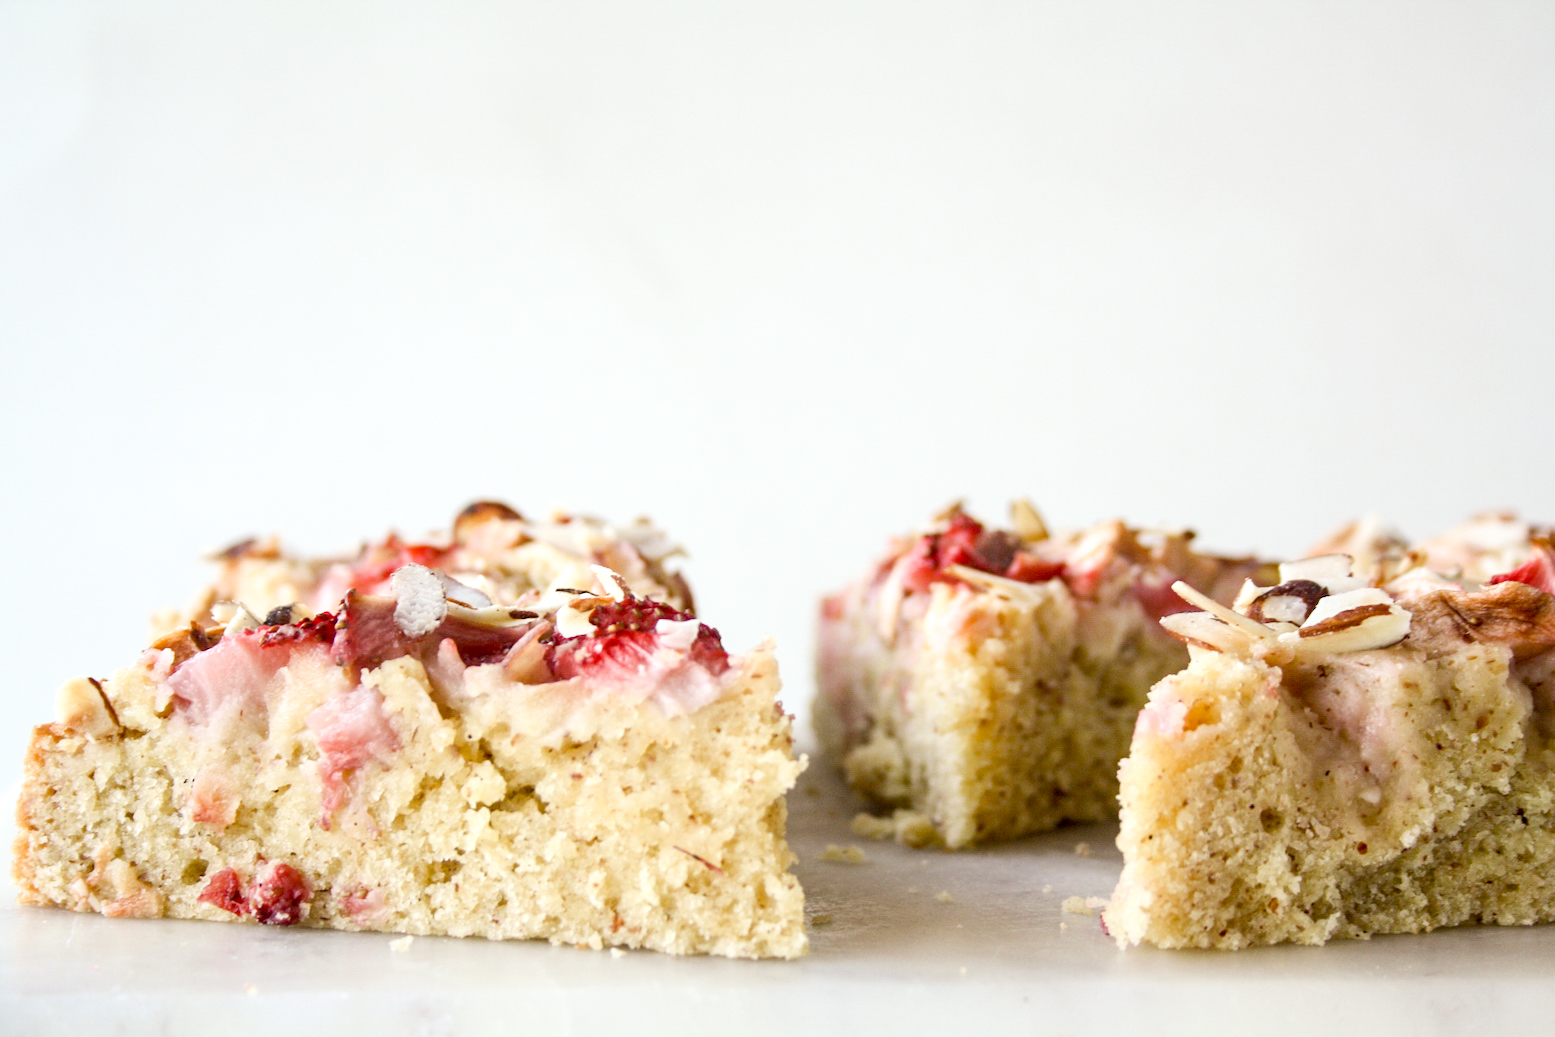 Tender almond and browned butter cake topped with fresh apples and strawberries